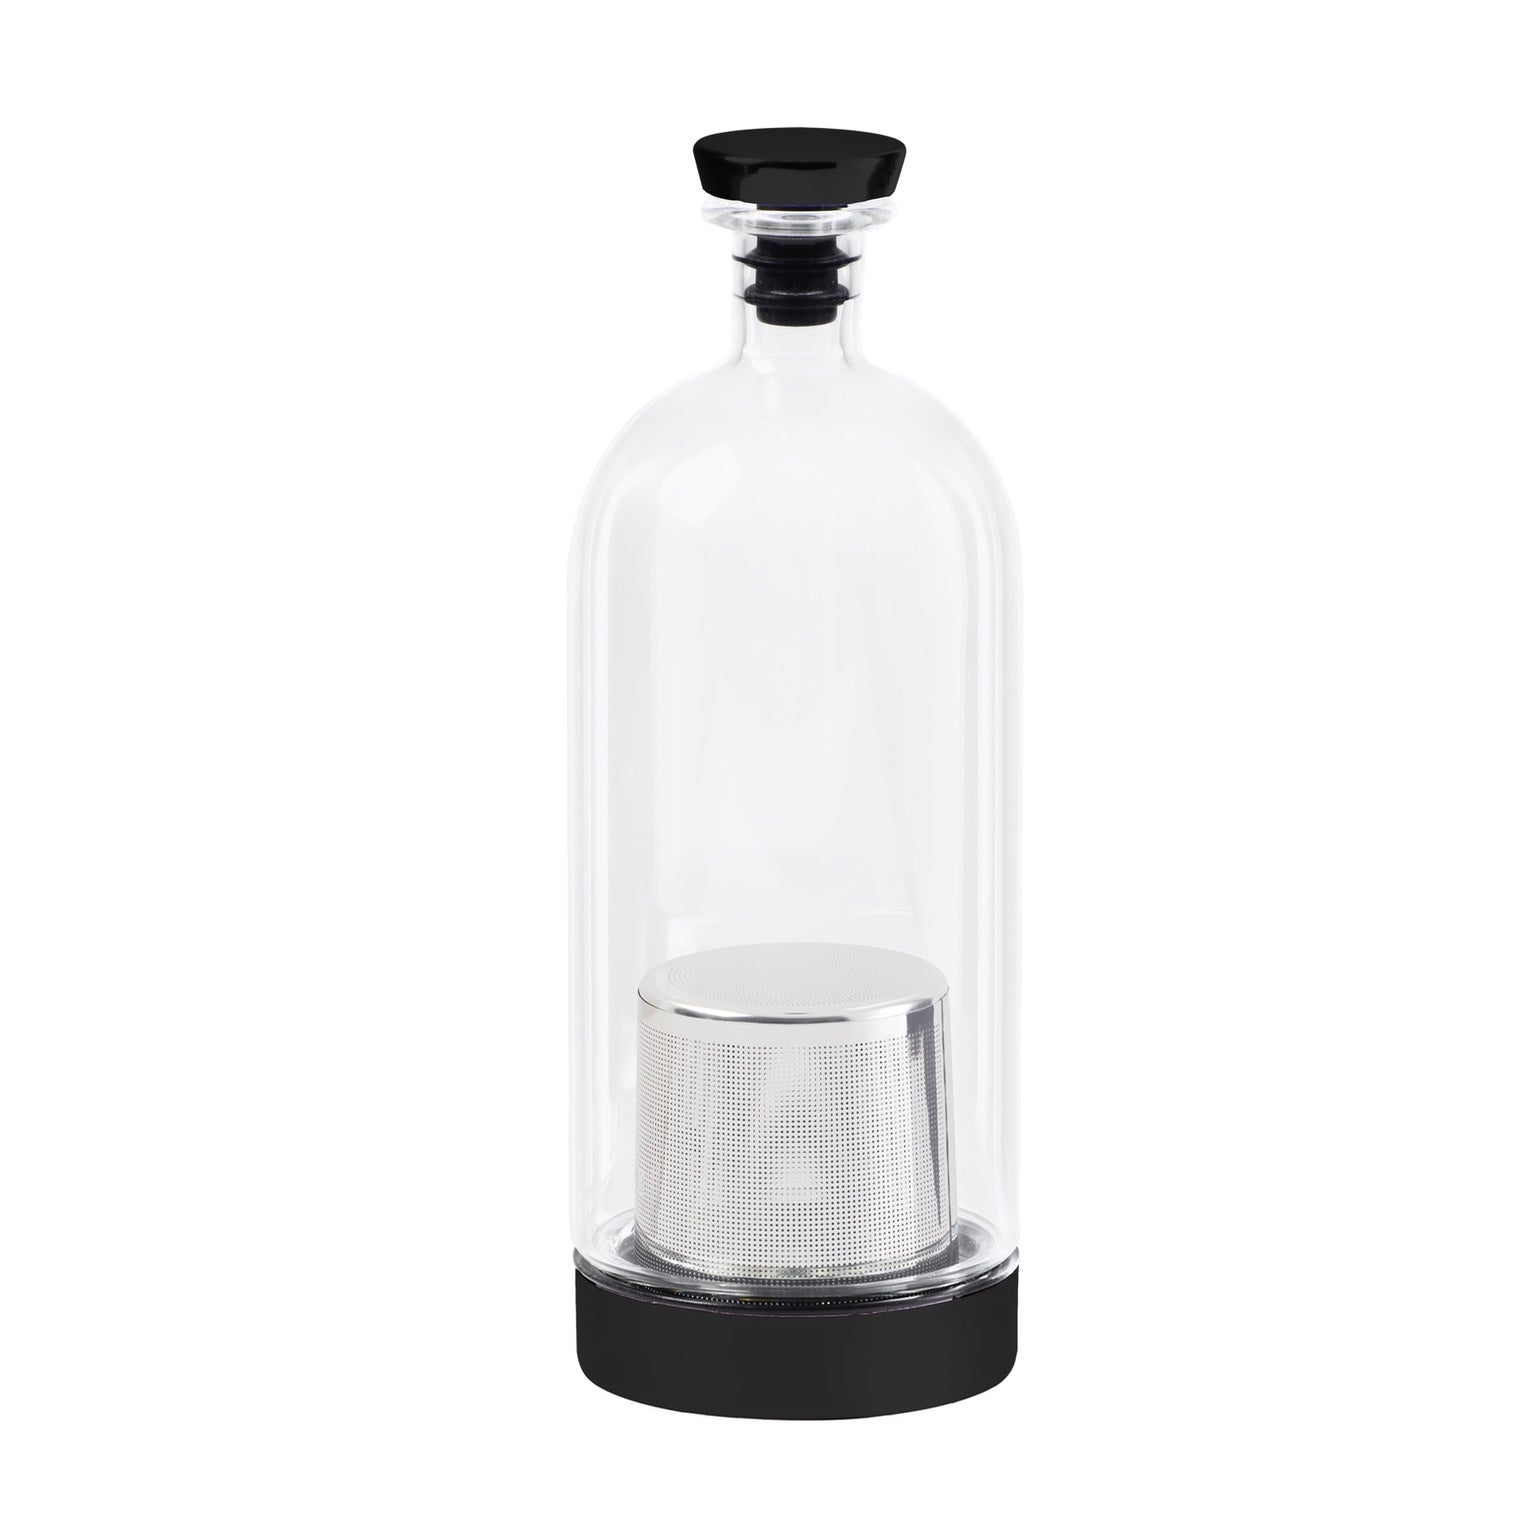 Alkemista Infusion Vessel - Black